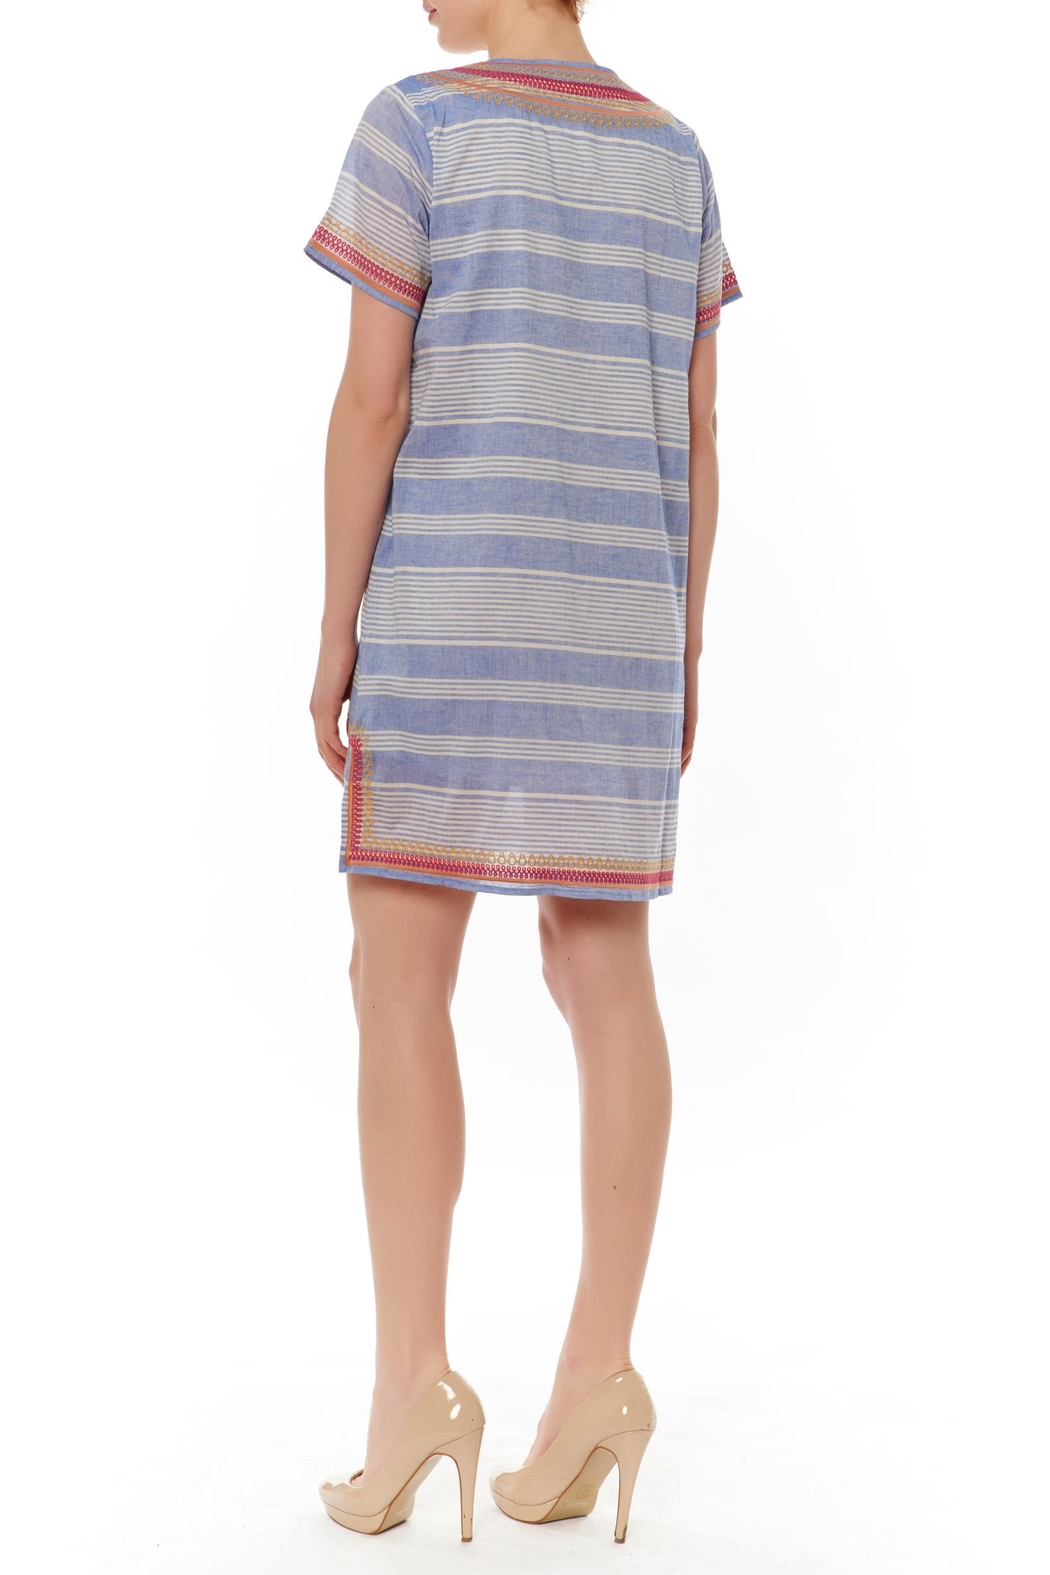 Thml Striped Embellished Shift - Front Full Image